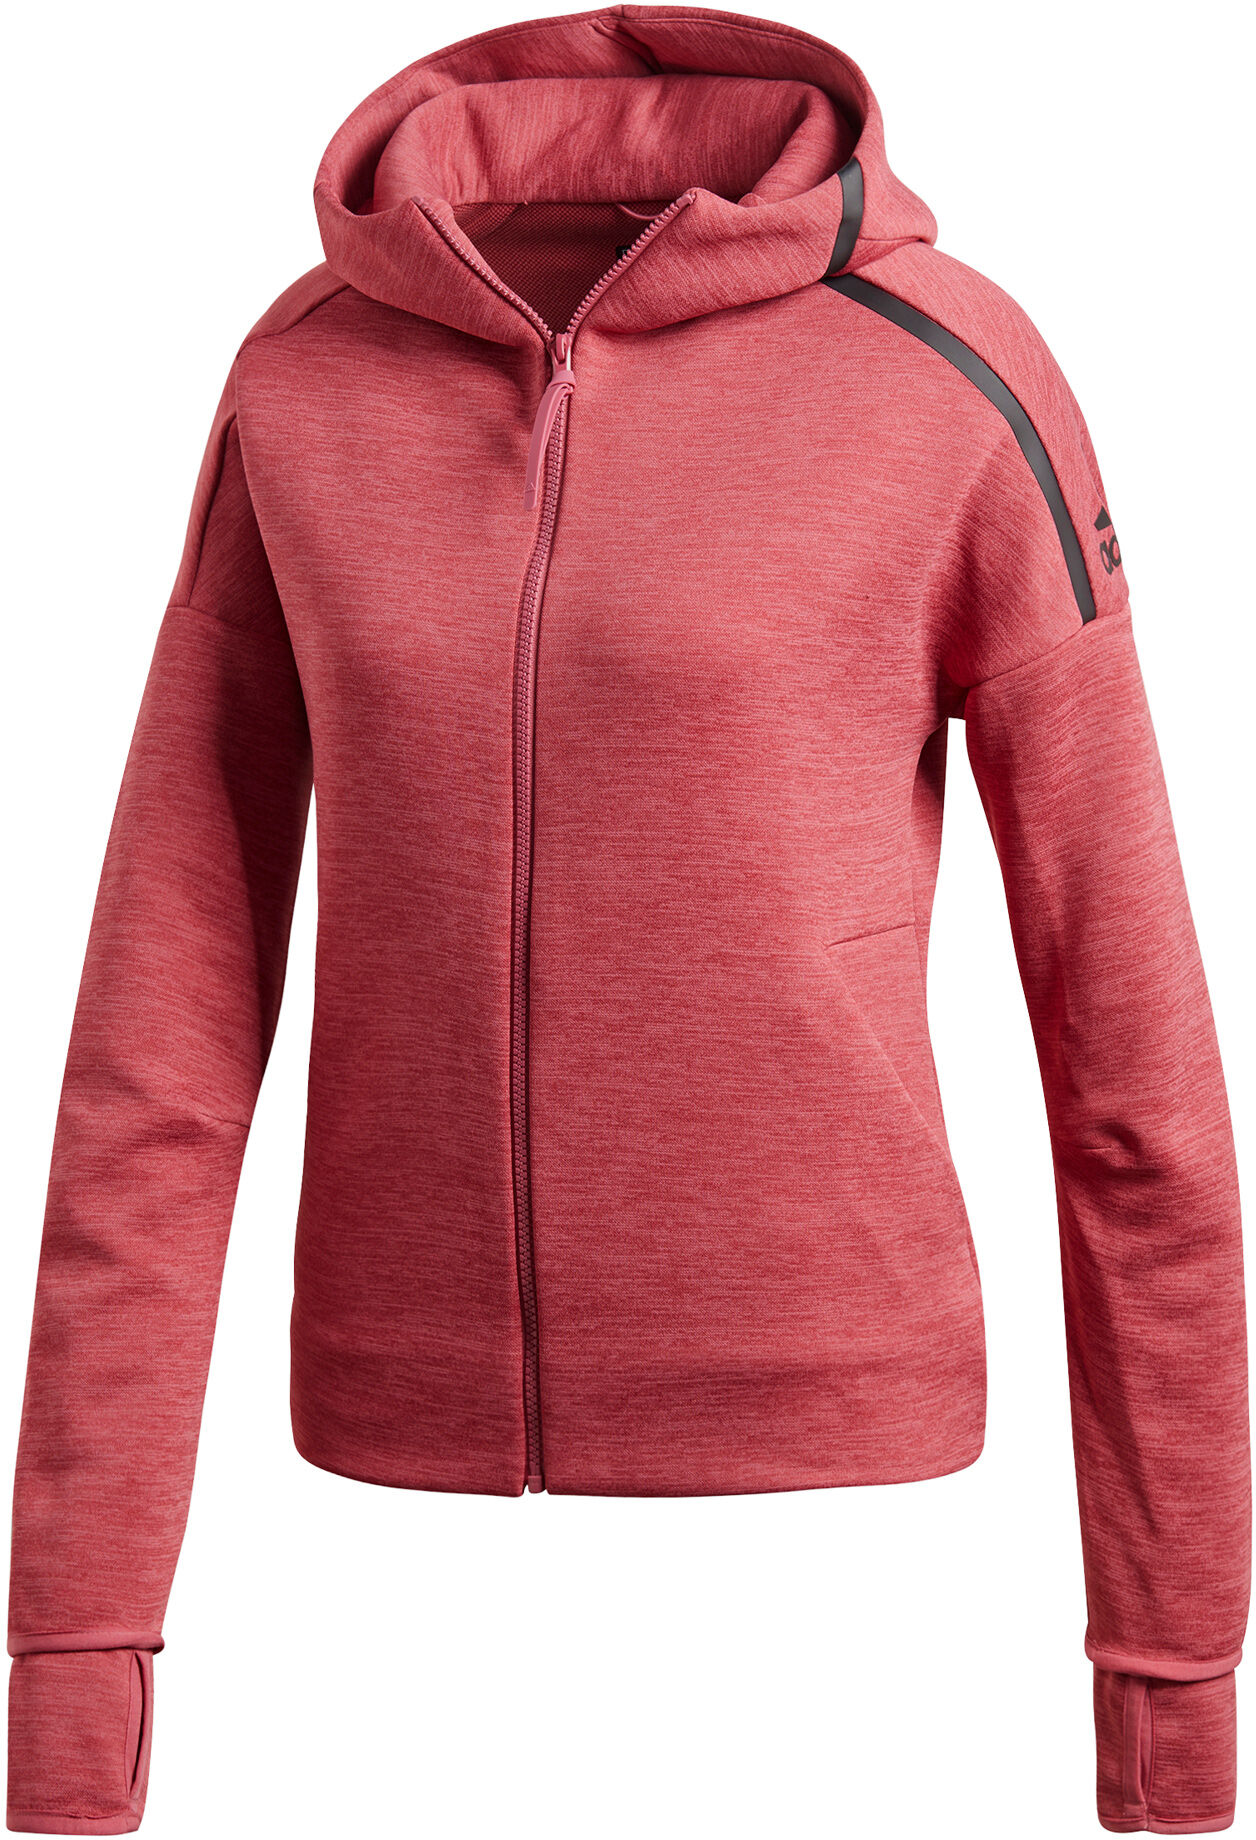 Intersport Adidas Mujer Intersport Mujer Sudaderas Mujer Sudaderas Intersport Adidas Adidas Sudaderas SHn5qtanw